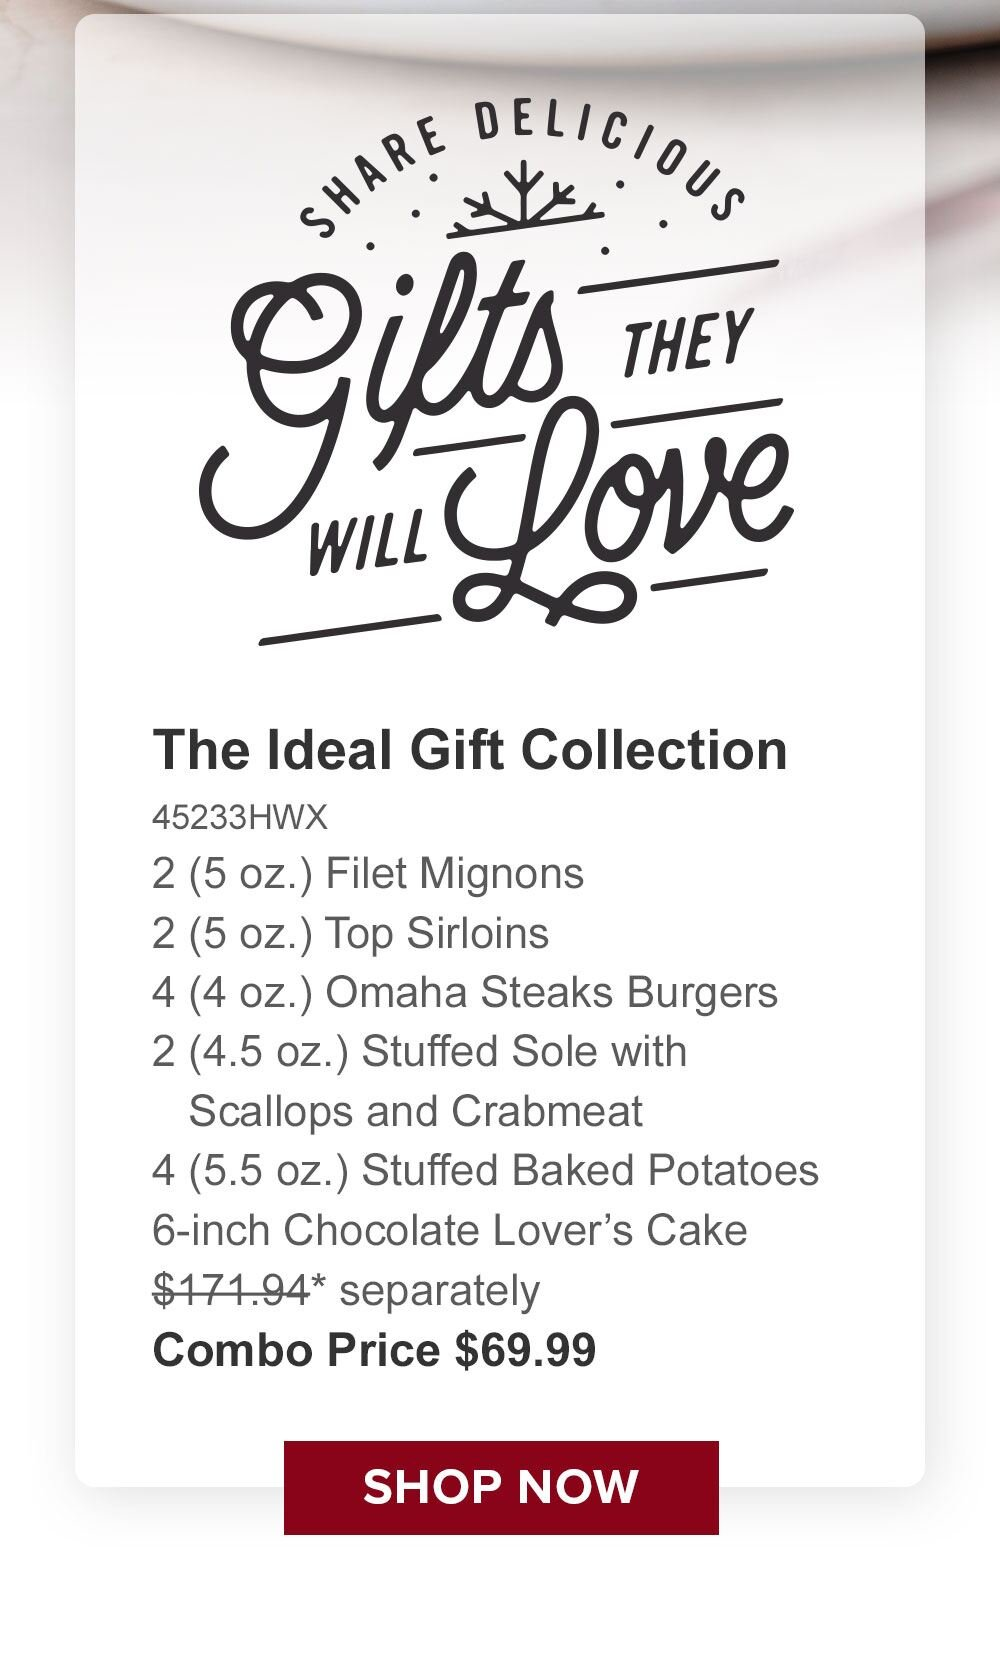 Share Delicious Gifts they will Love | The Ideal Gift Collection  45233HWX-  2 (5 oz.) Filet Mignons  -  2 (5 oz.) Top Sirloins -  4 (4 oz.) Omaha Steaks Burgers  - 2 (4.5 oz.) Stuffed Sole with _Scallops and Crabmeat -  4 (5.5 oz.) Stuffed Baked Potatoes - 6-inch Chocolate Lover's Cake - $171.94* separately | Combo Price $69.99 || Shop Now